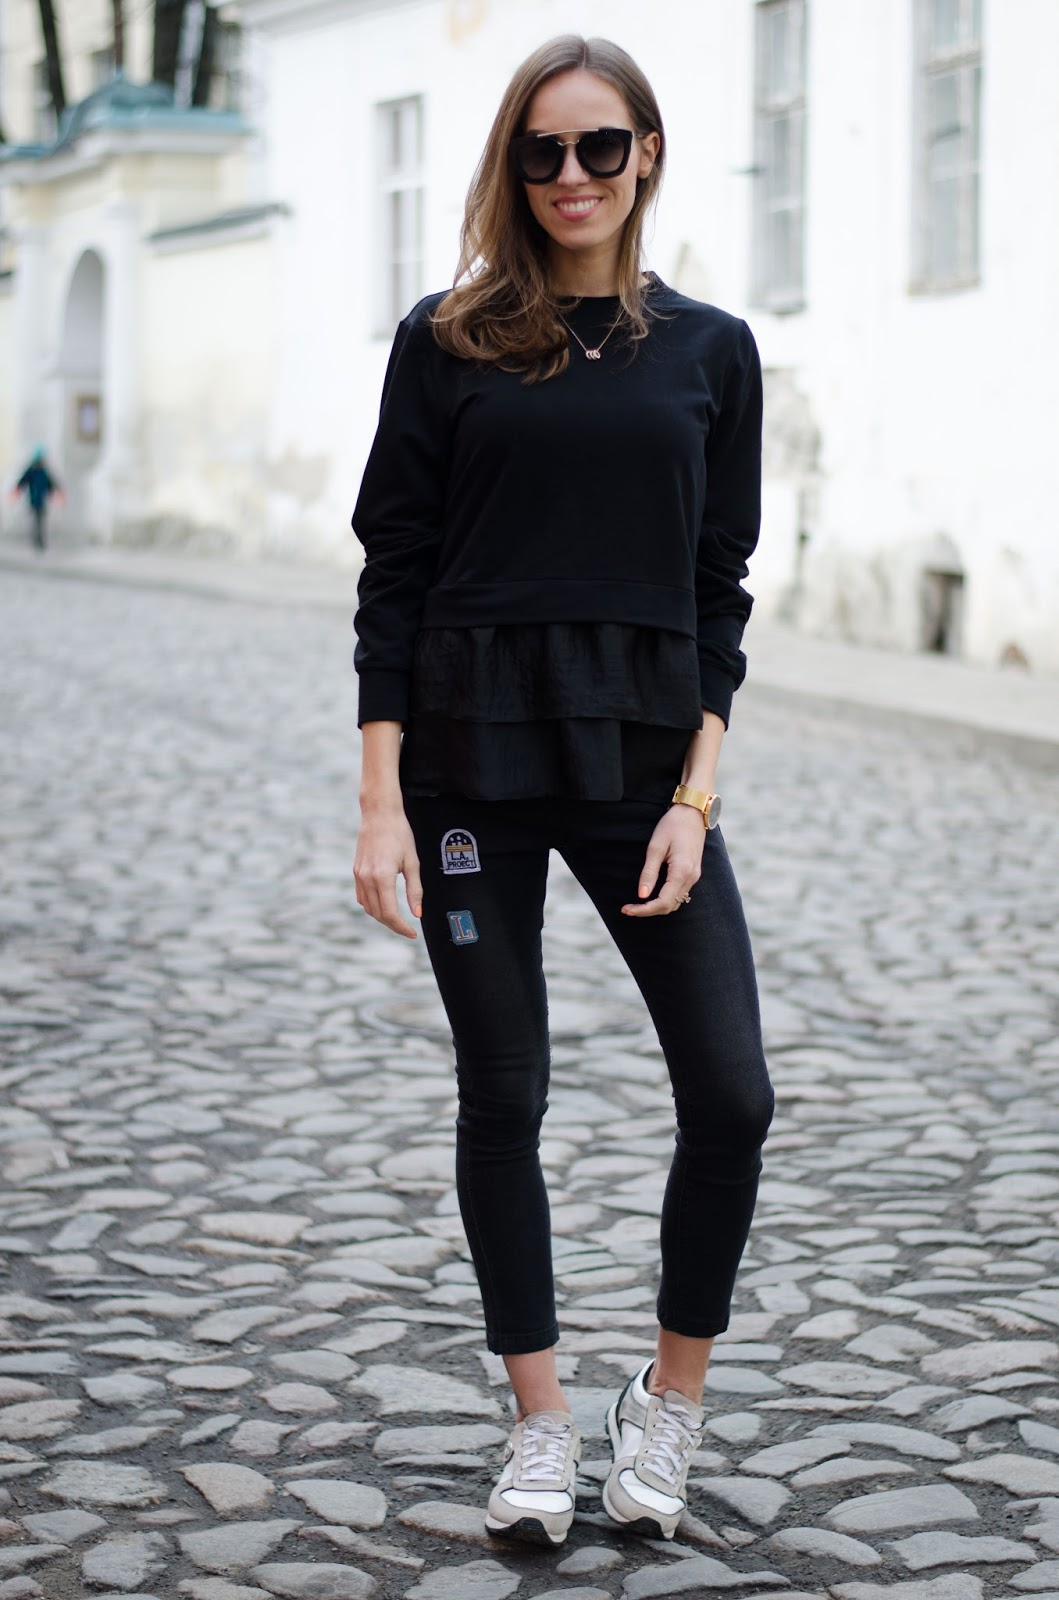 kristjaana mere black minimalist spring outfit jeans and sweater